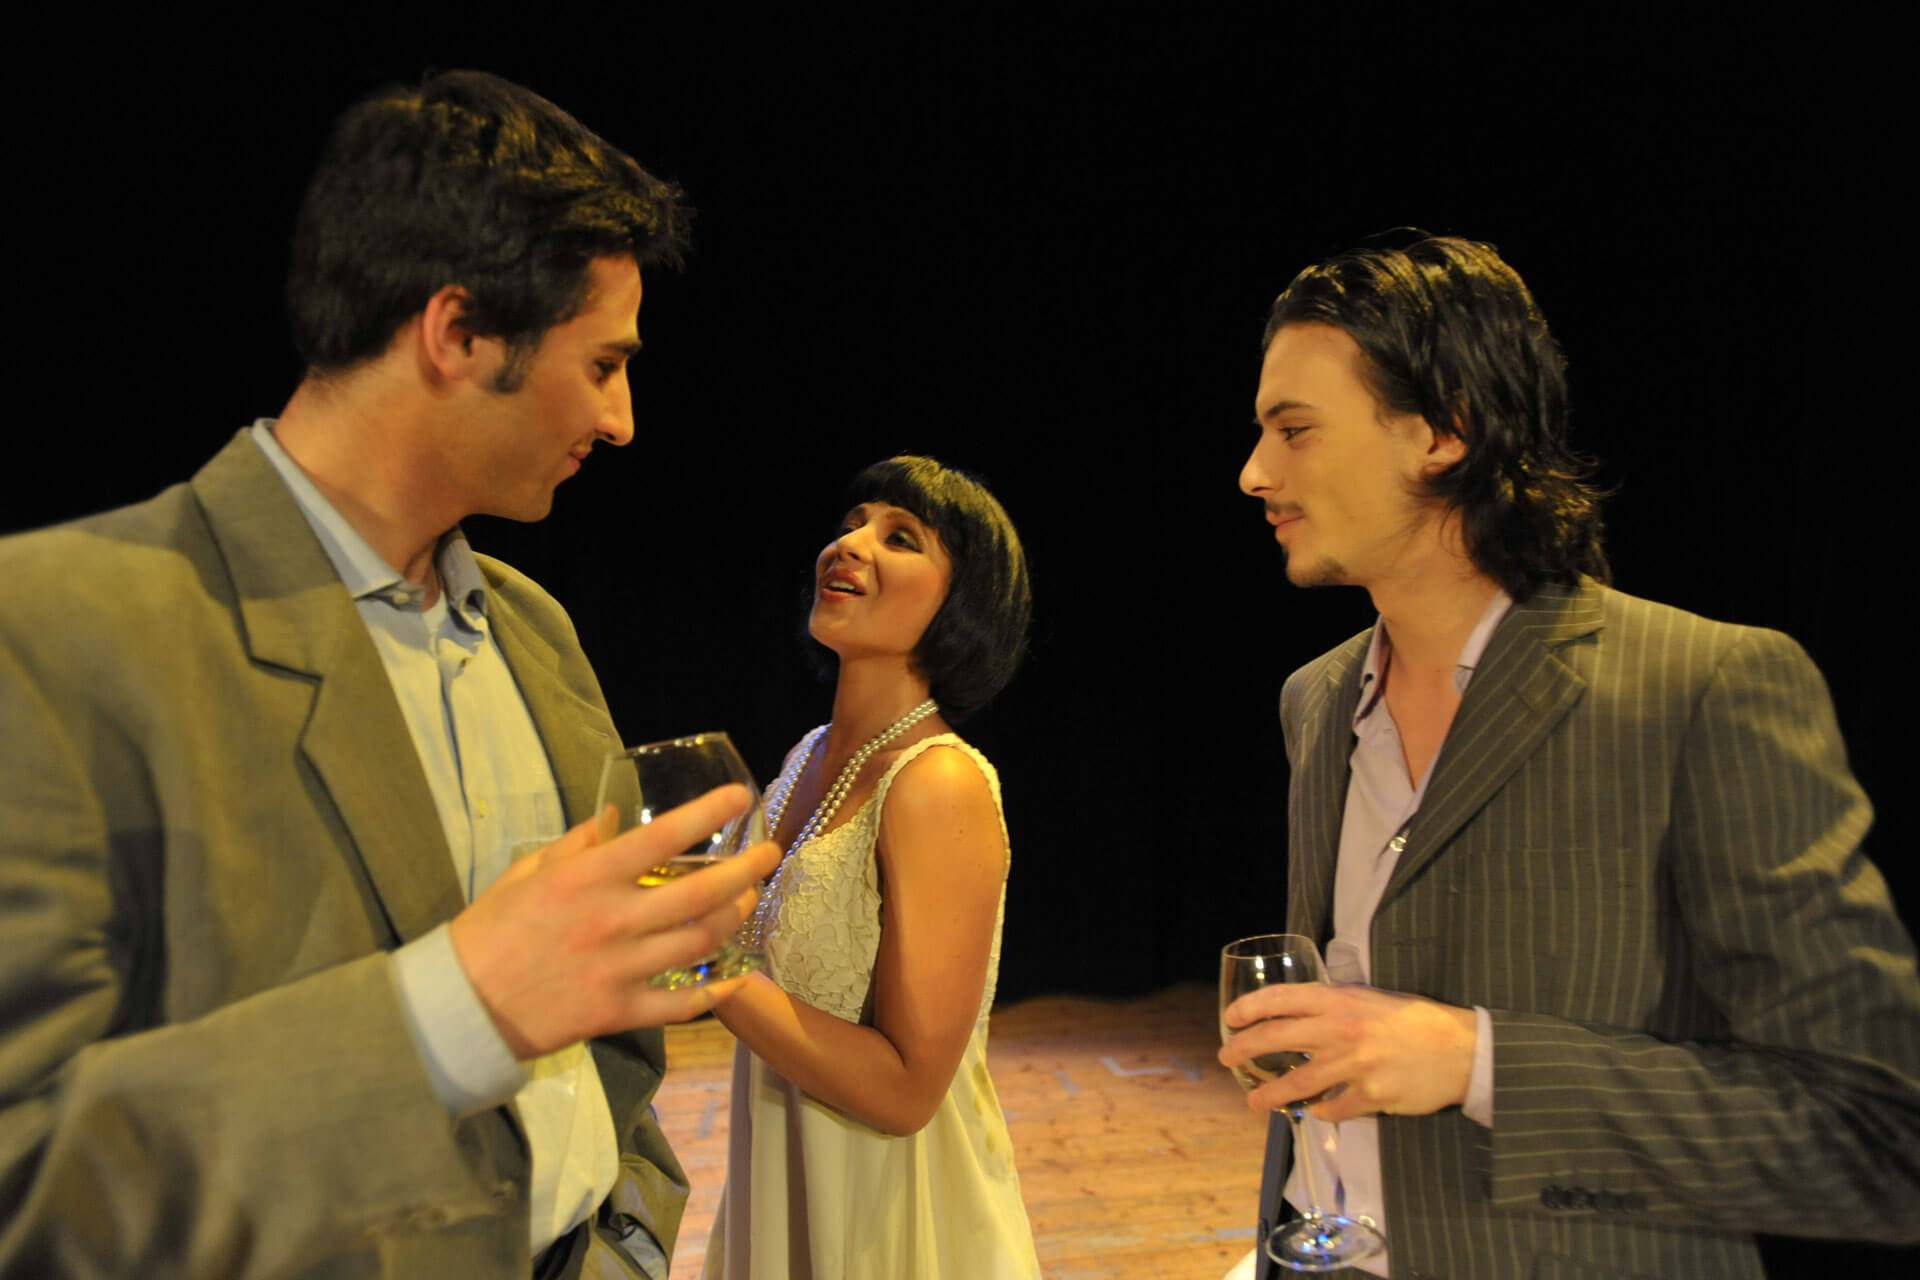 scuola-di-teatro-colli-tribute-to-pinter-2013-3